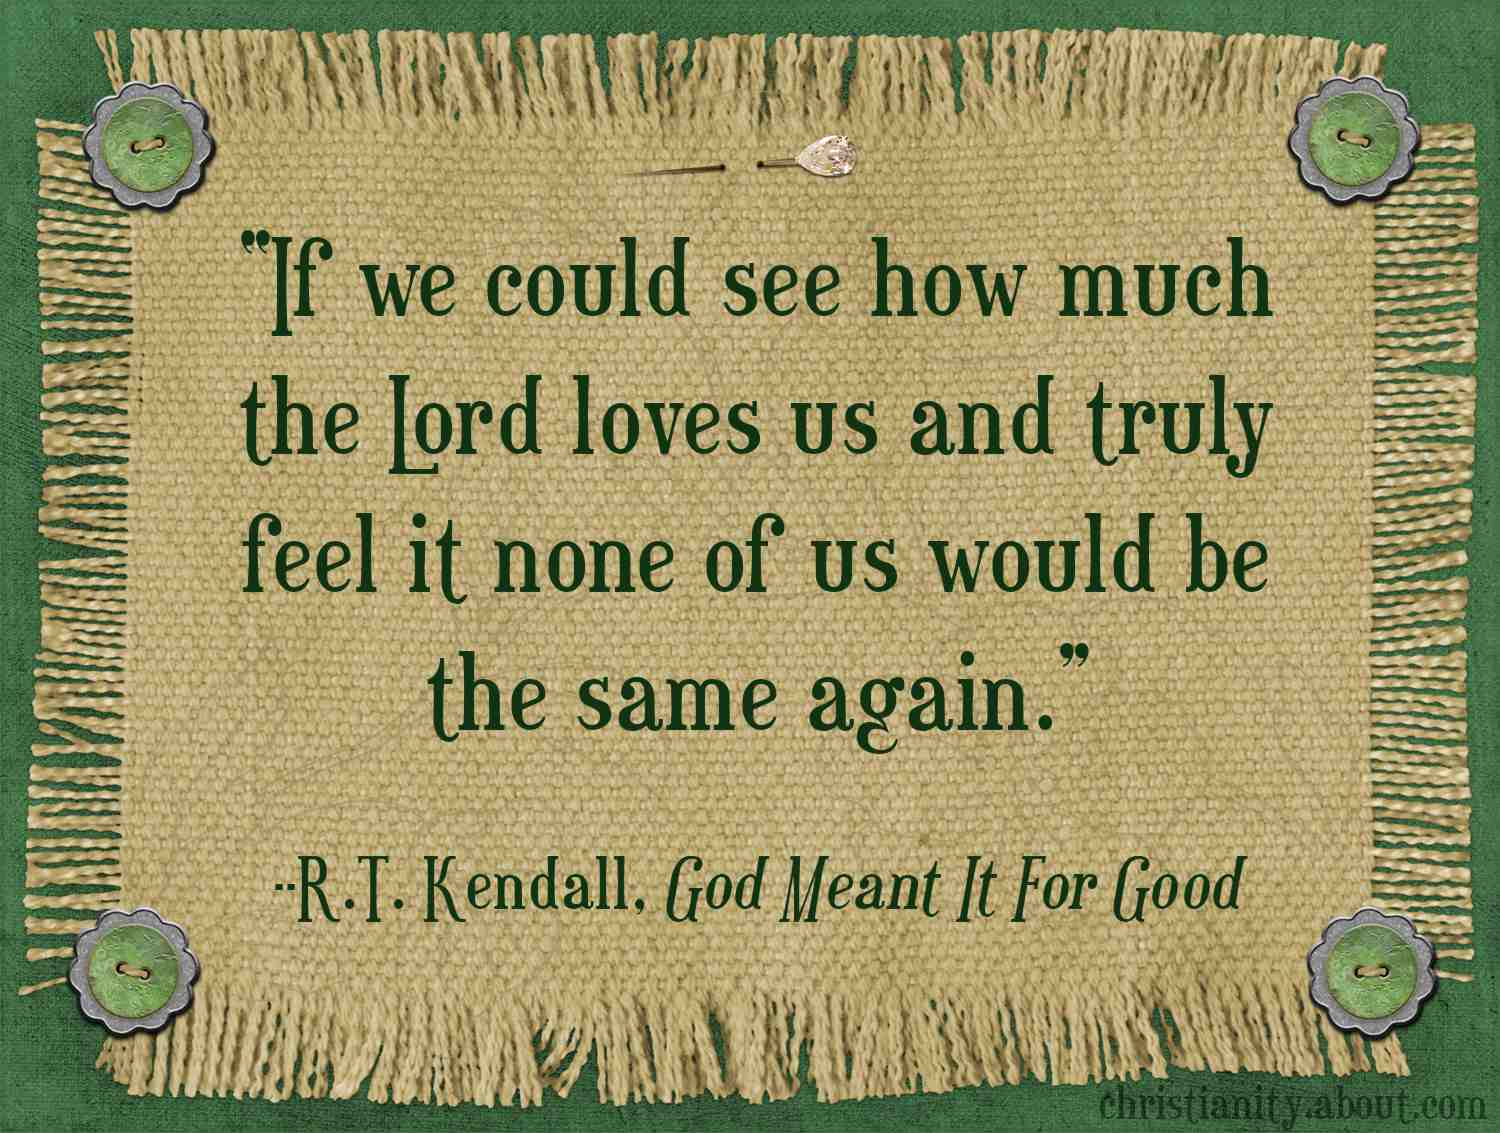 God's Unconditional Love is the Source of our Worth